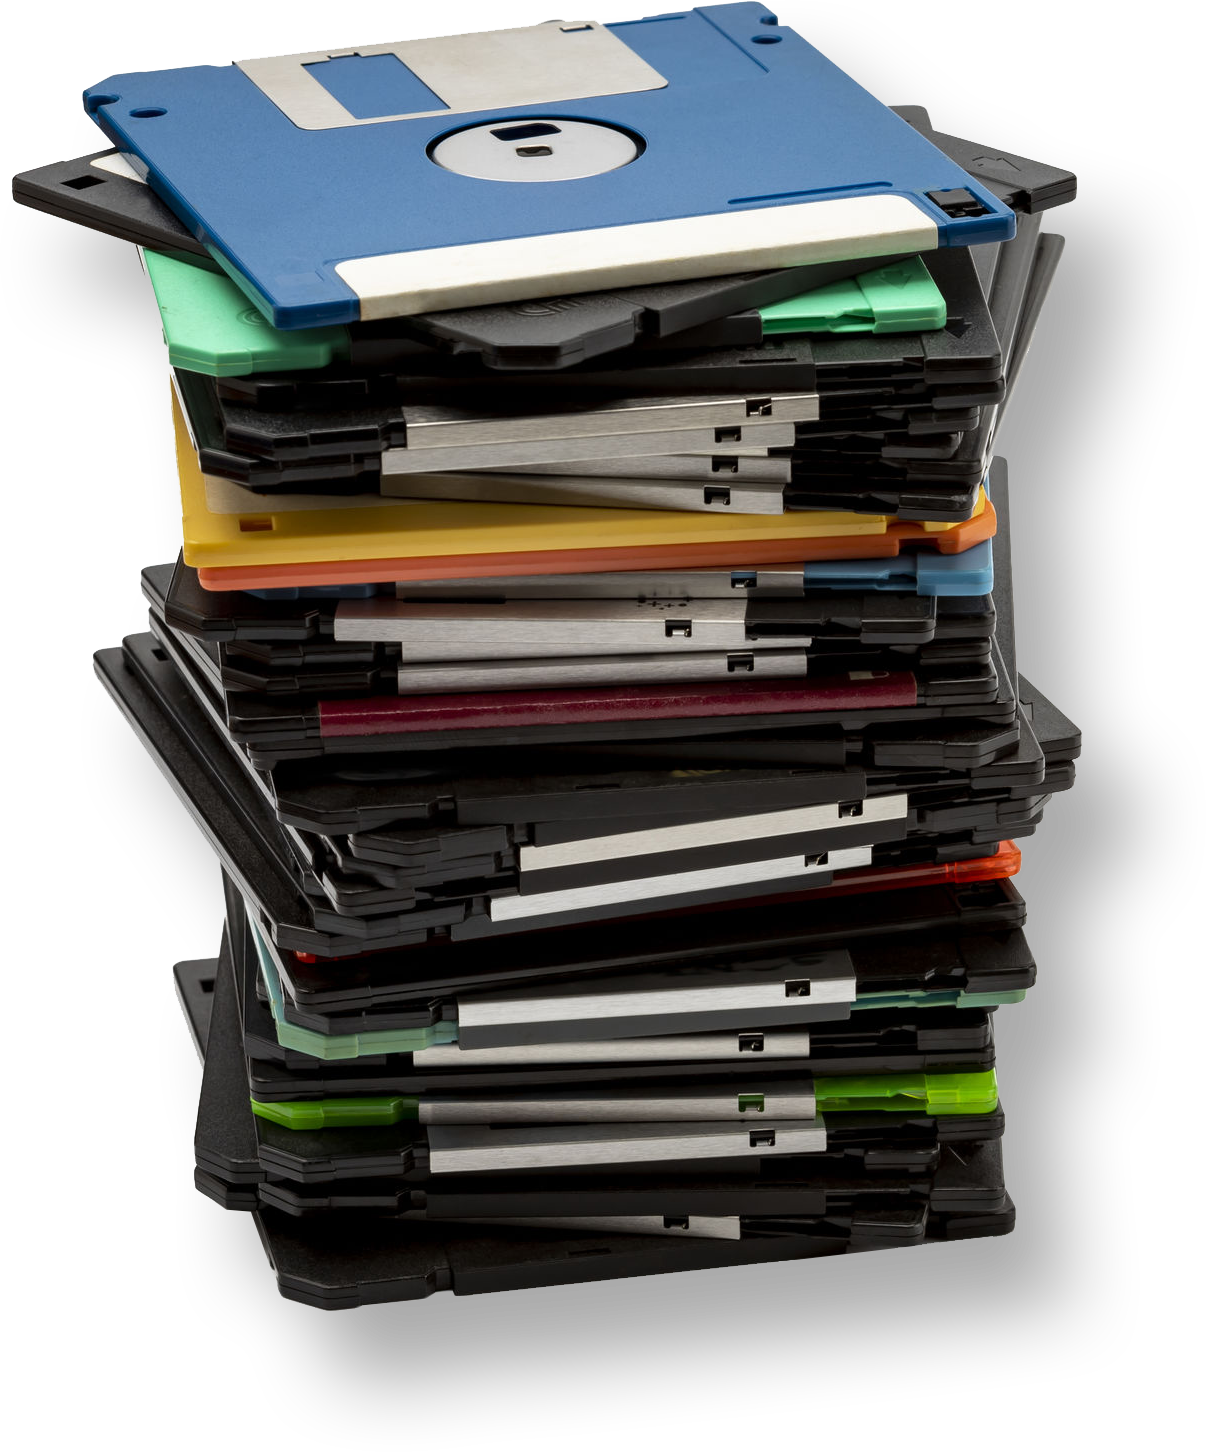 //www.45elf.nl/wp-content/uploads/2021/03/diskettes.png